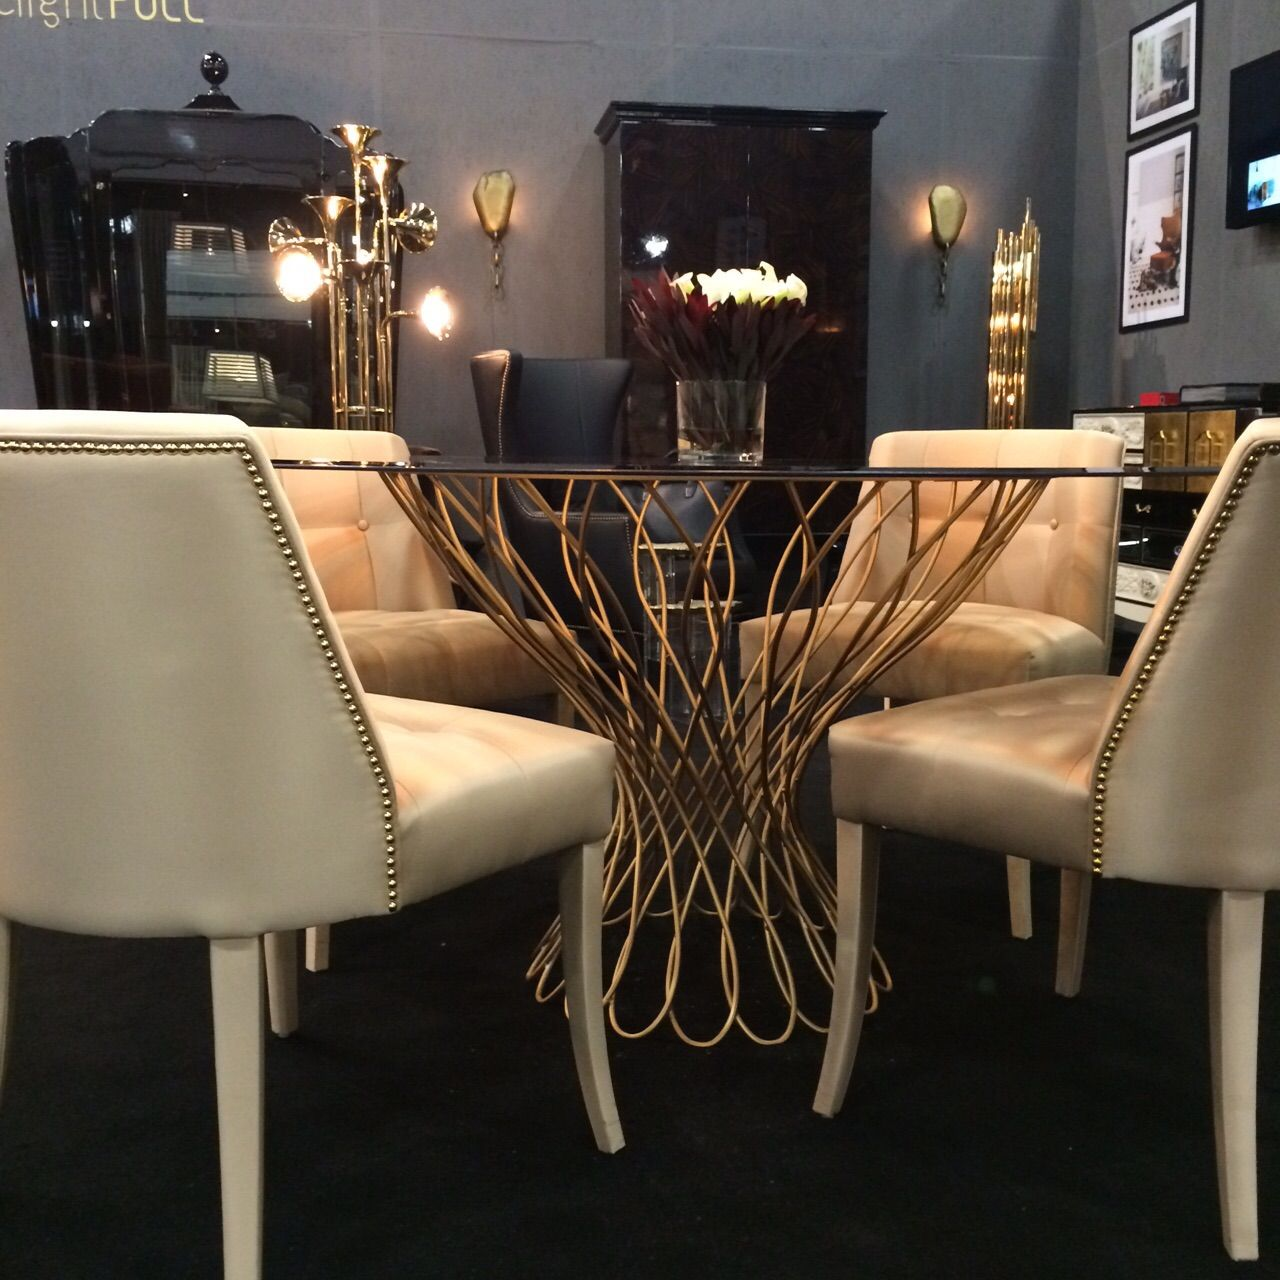 We are now at maison u objet americas ready to receive you at